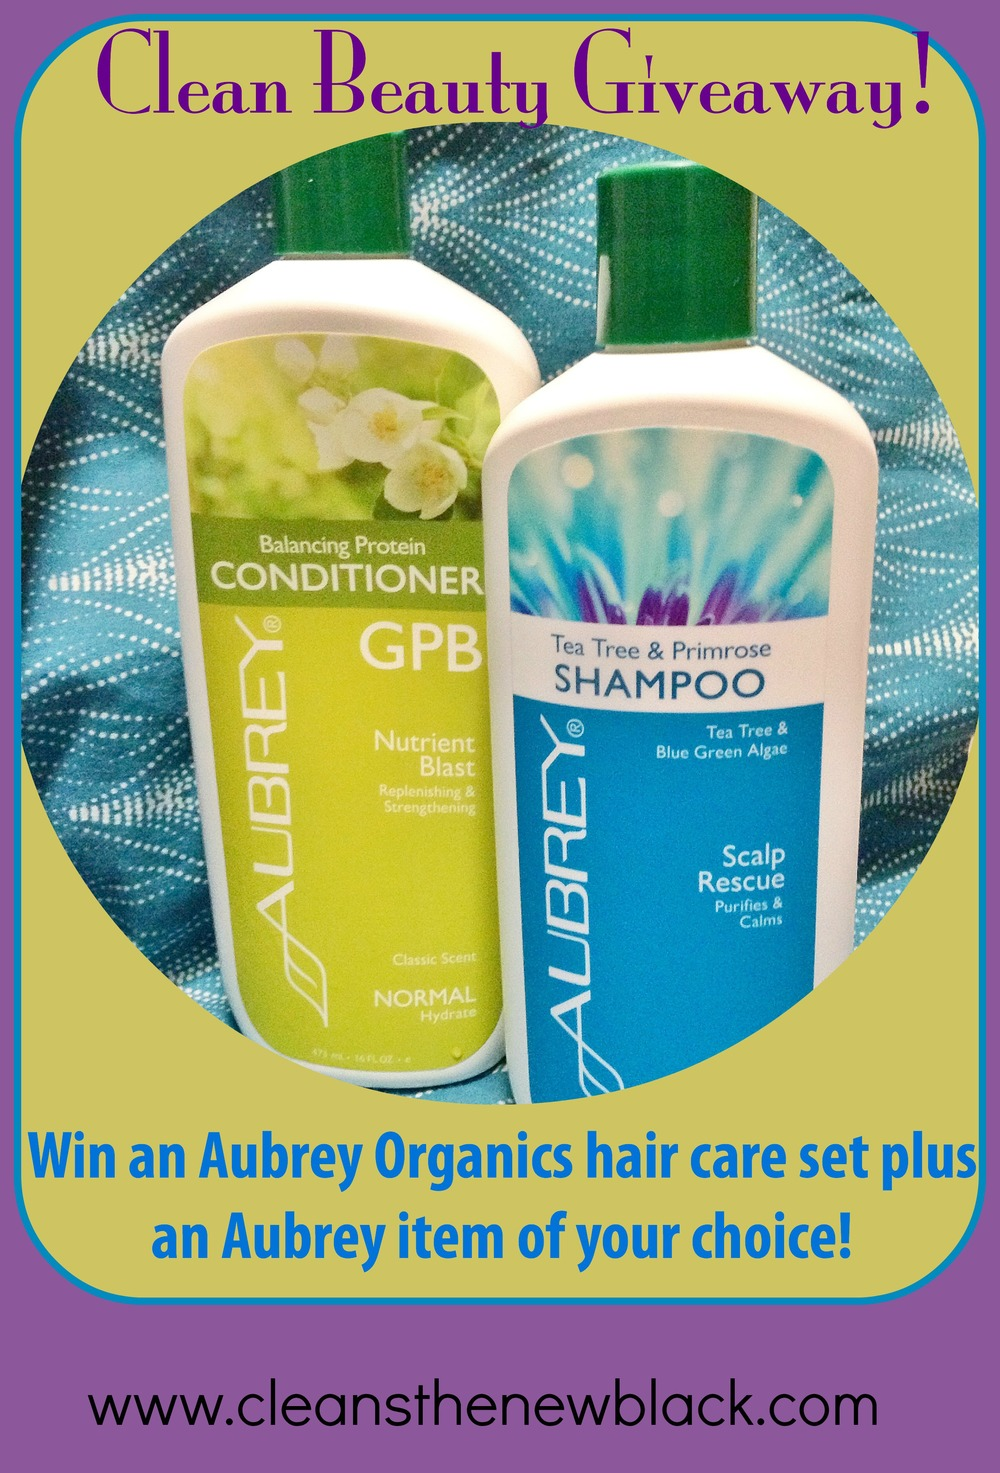 Start cleaning out your beauty routine with this Aubrey Organics giveaway!